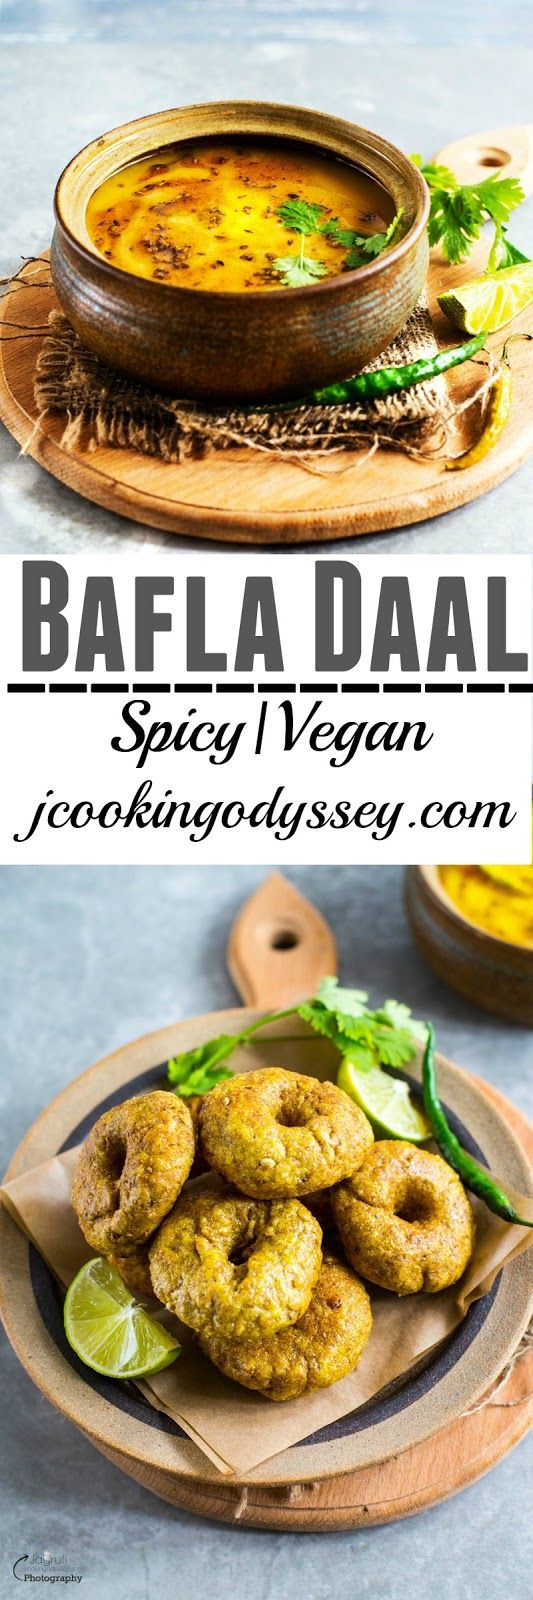 Jagruti's Cooking Odyssey: Daal Bafla - Bafla Baati with Daal - Steamed and Deep Fried Flaky Doughnut with Spicy lentil broth